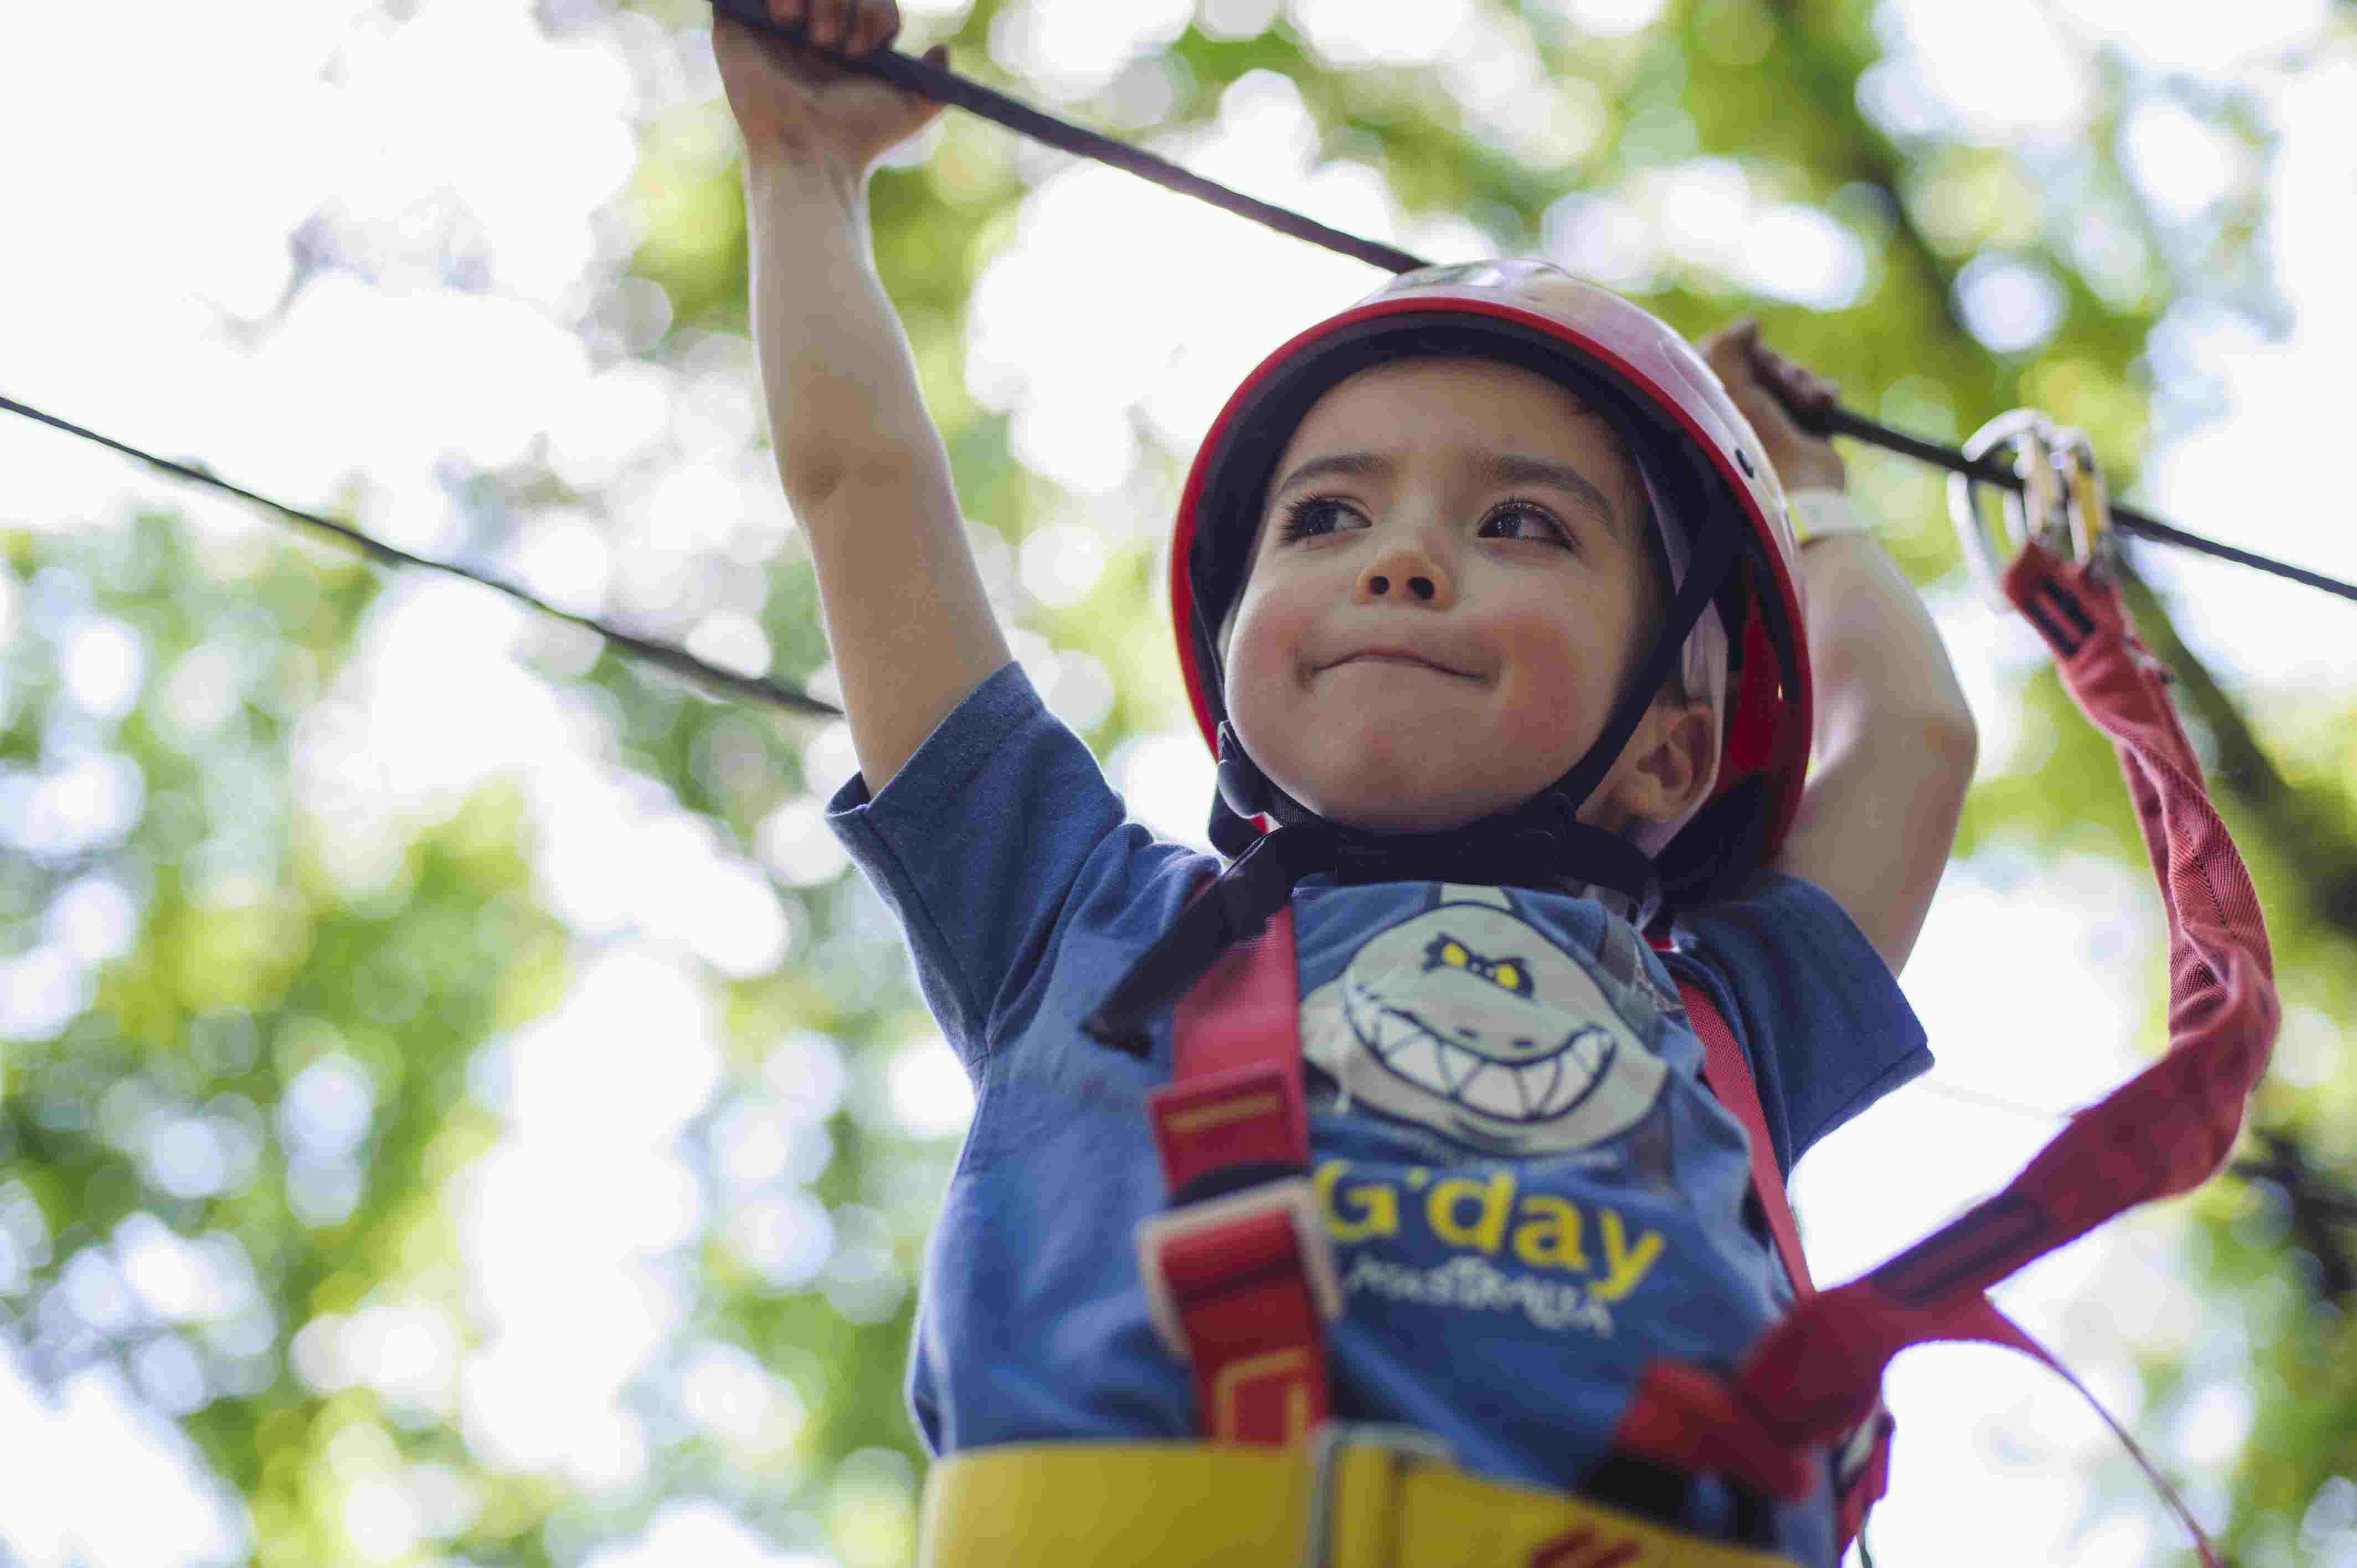 Young boy in an obstacle course